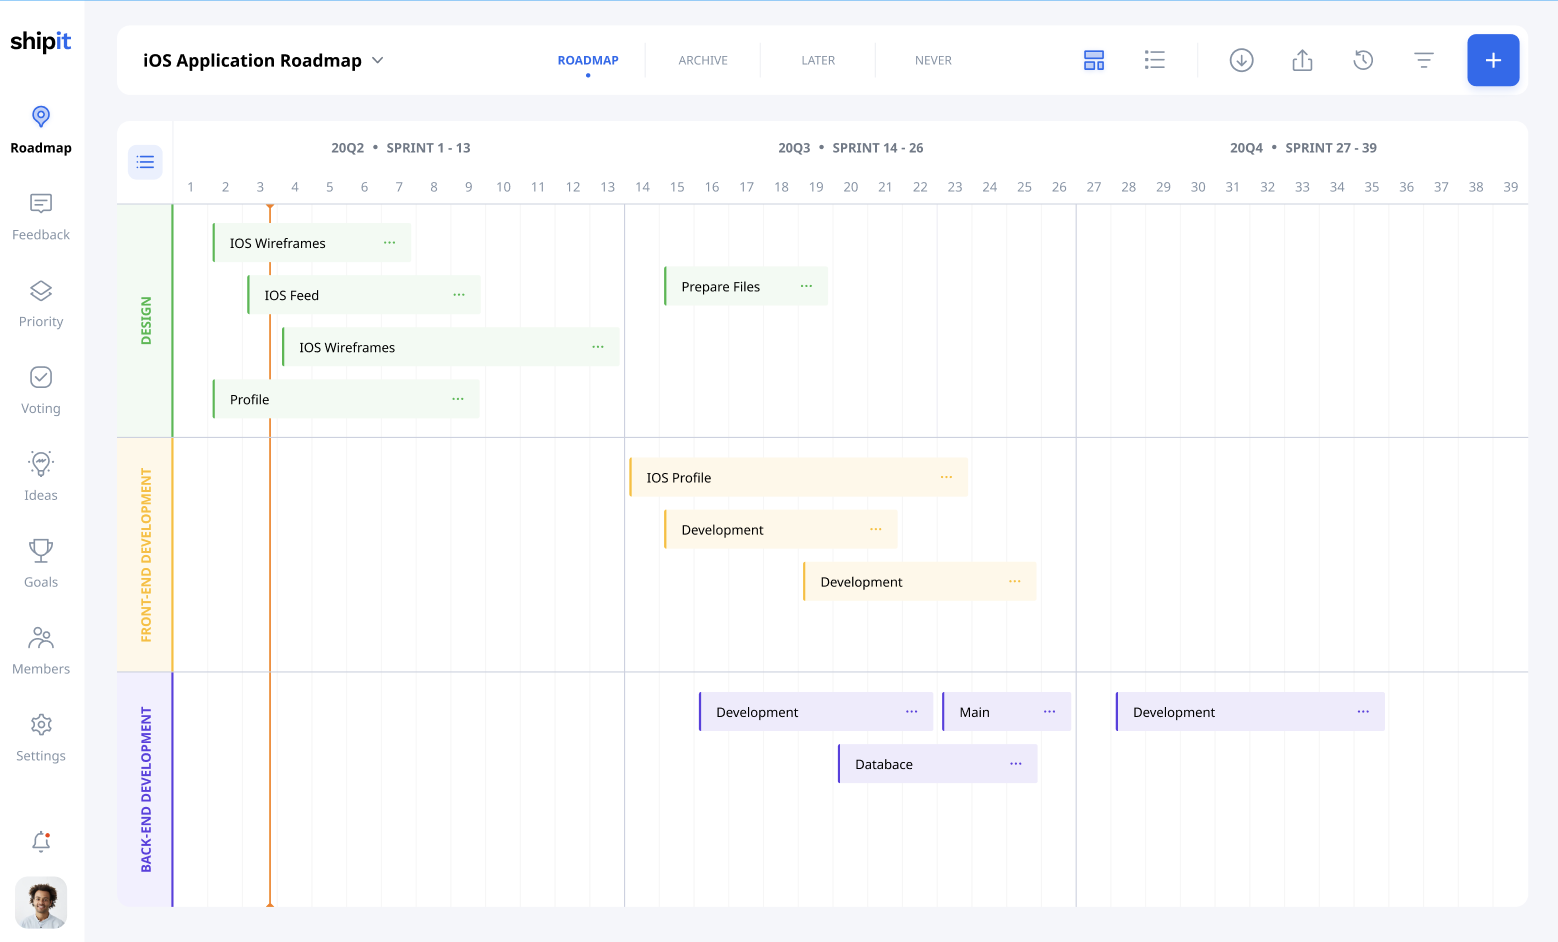 Product roadmap in Gantt style